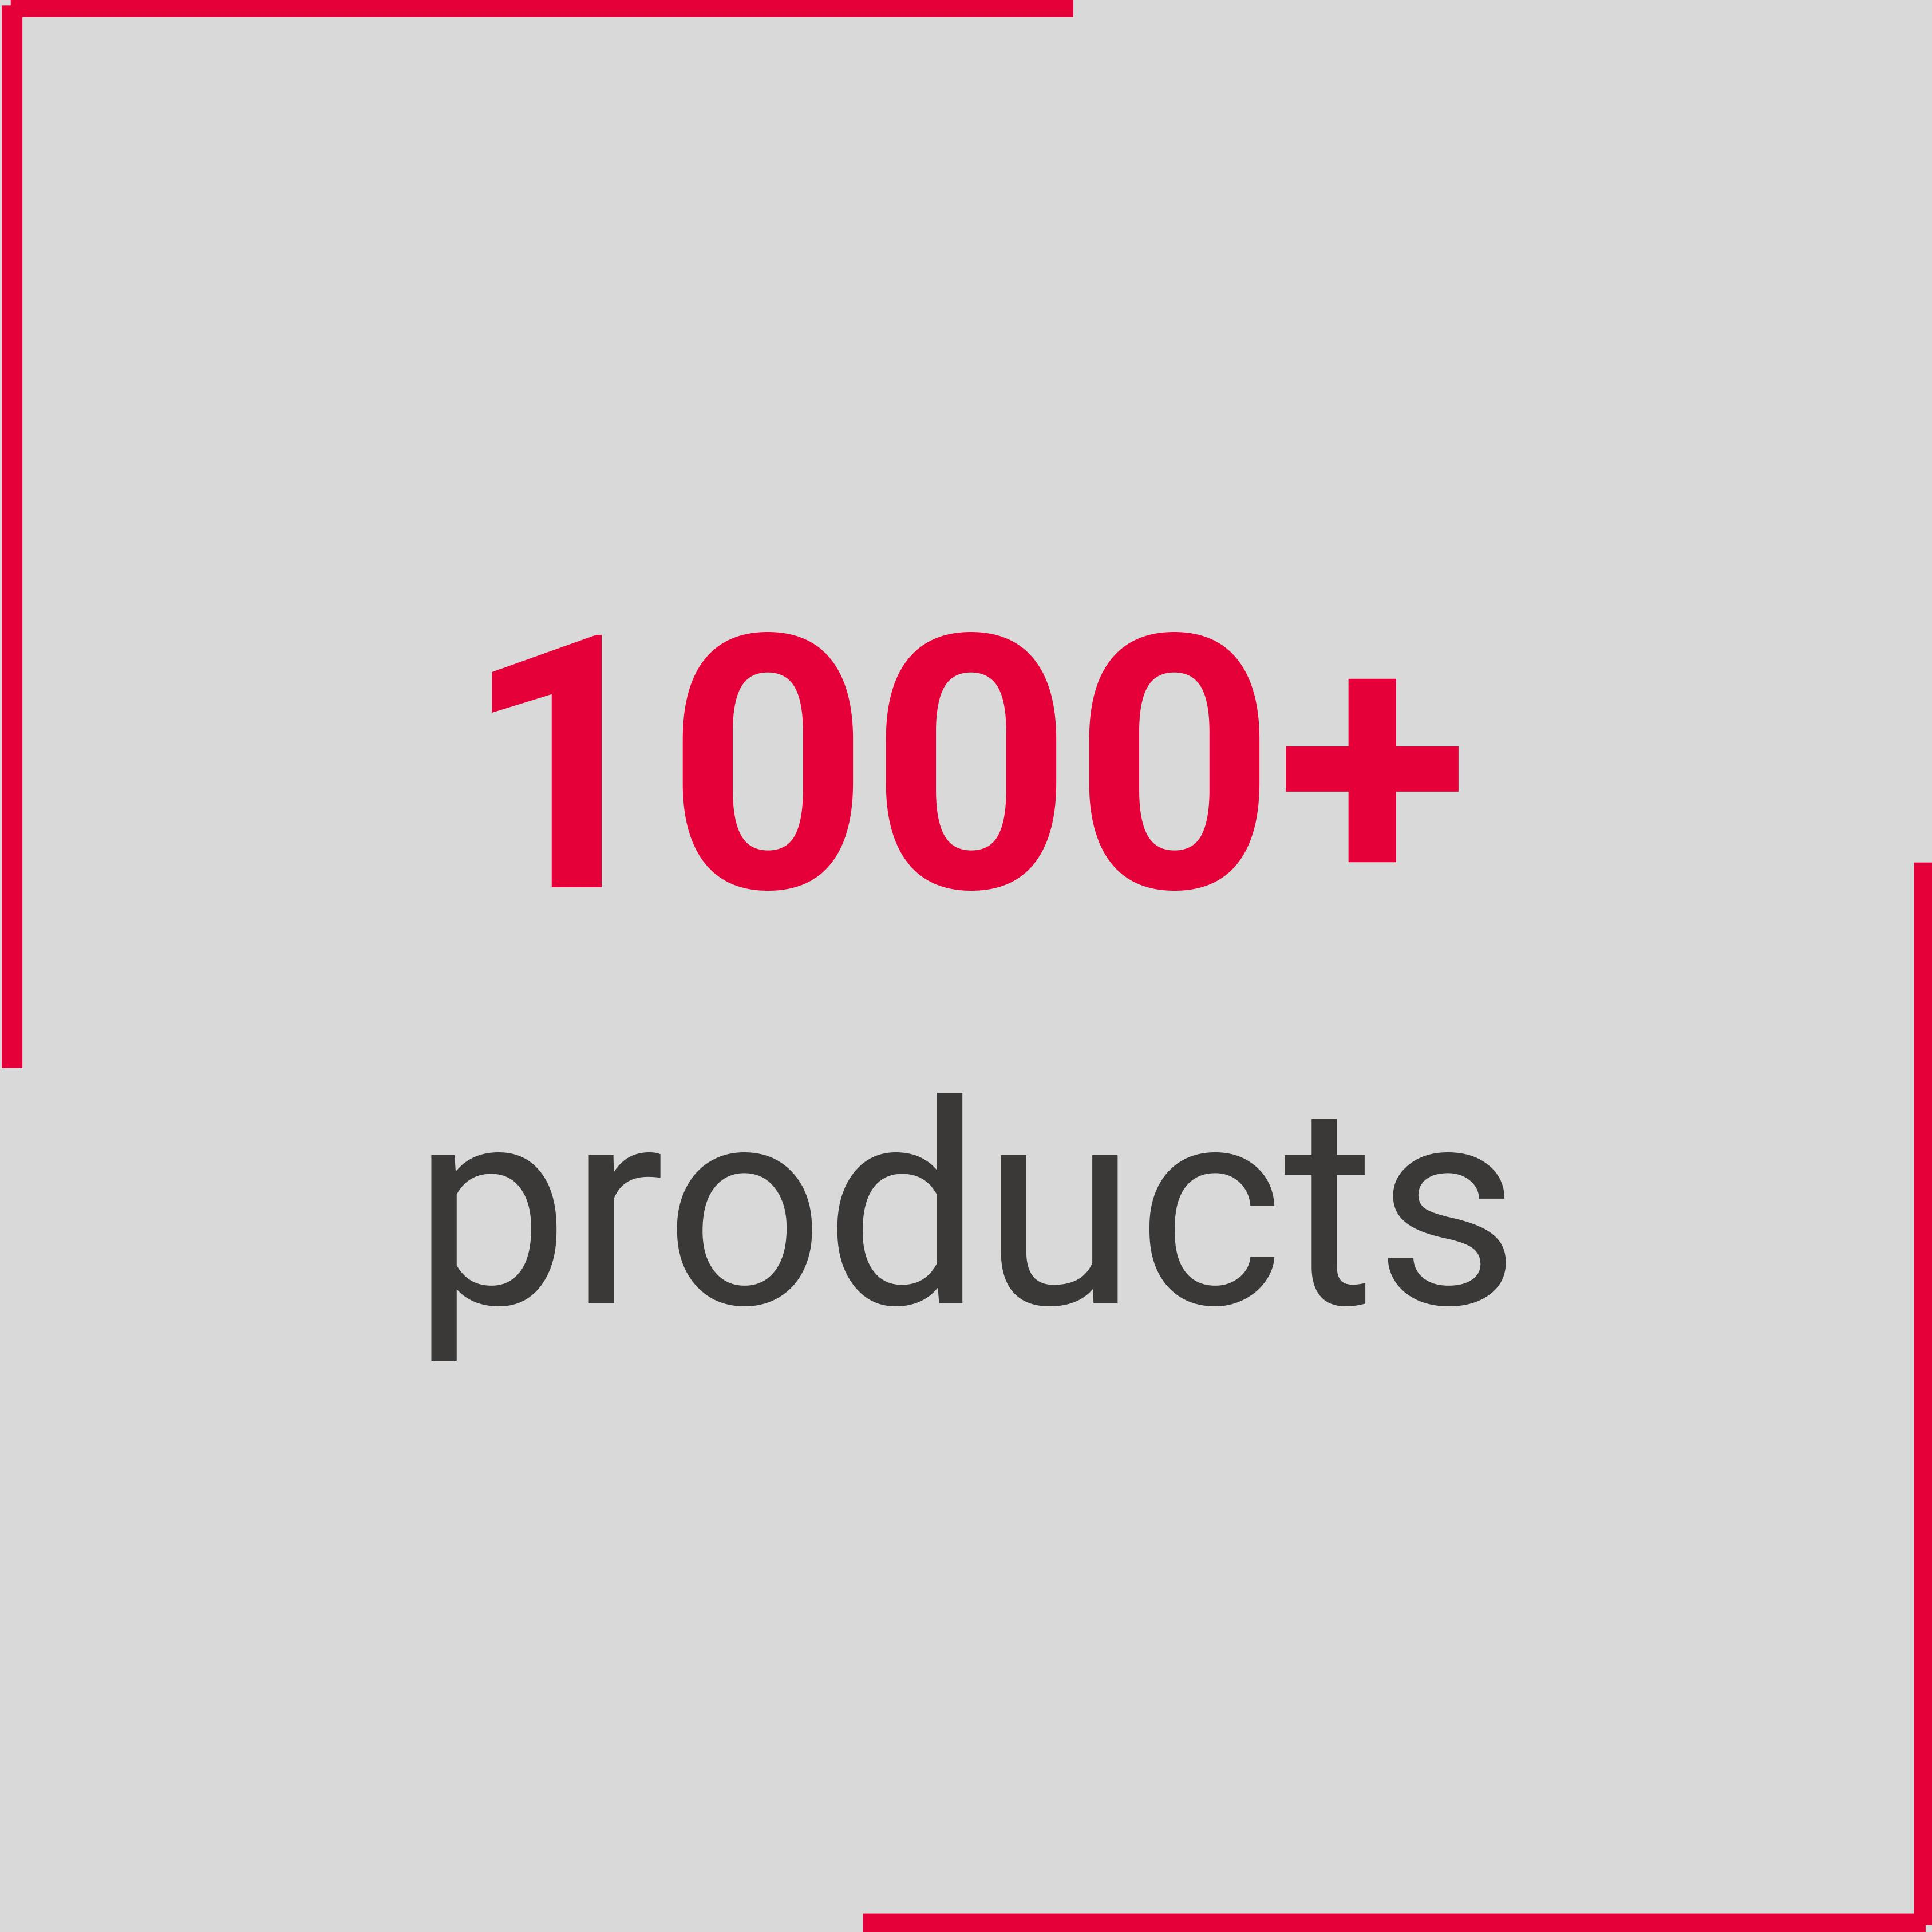 1000 products